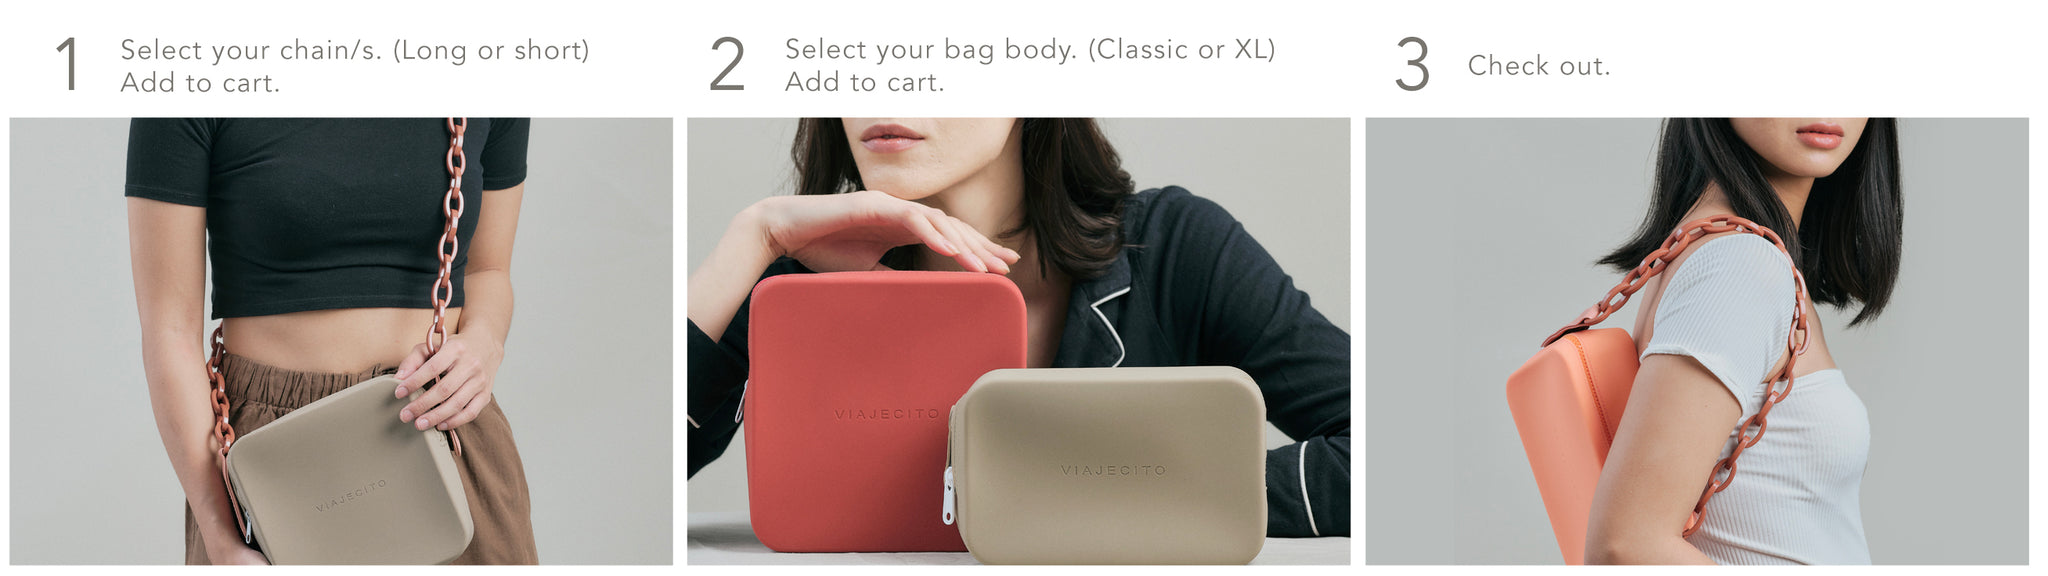 1.) Select your chain/s, 2.) Select your bag body, 3.) Check out